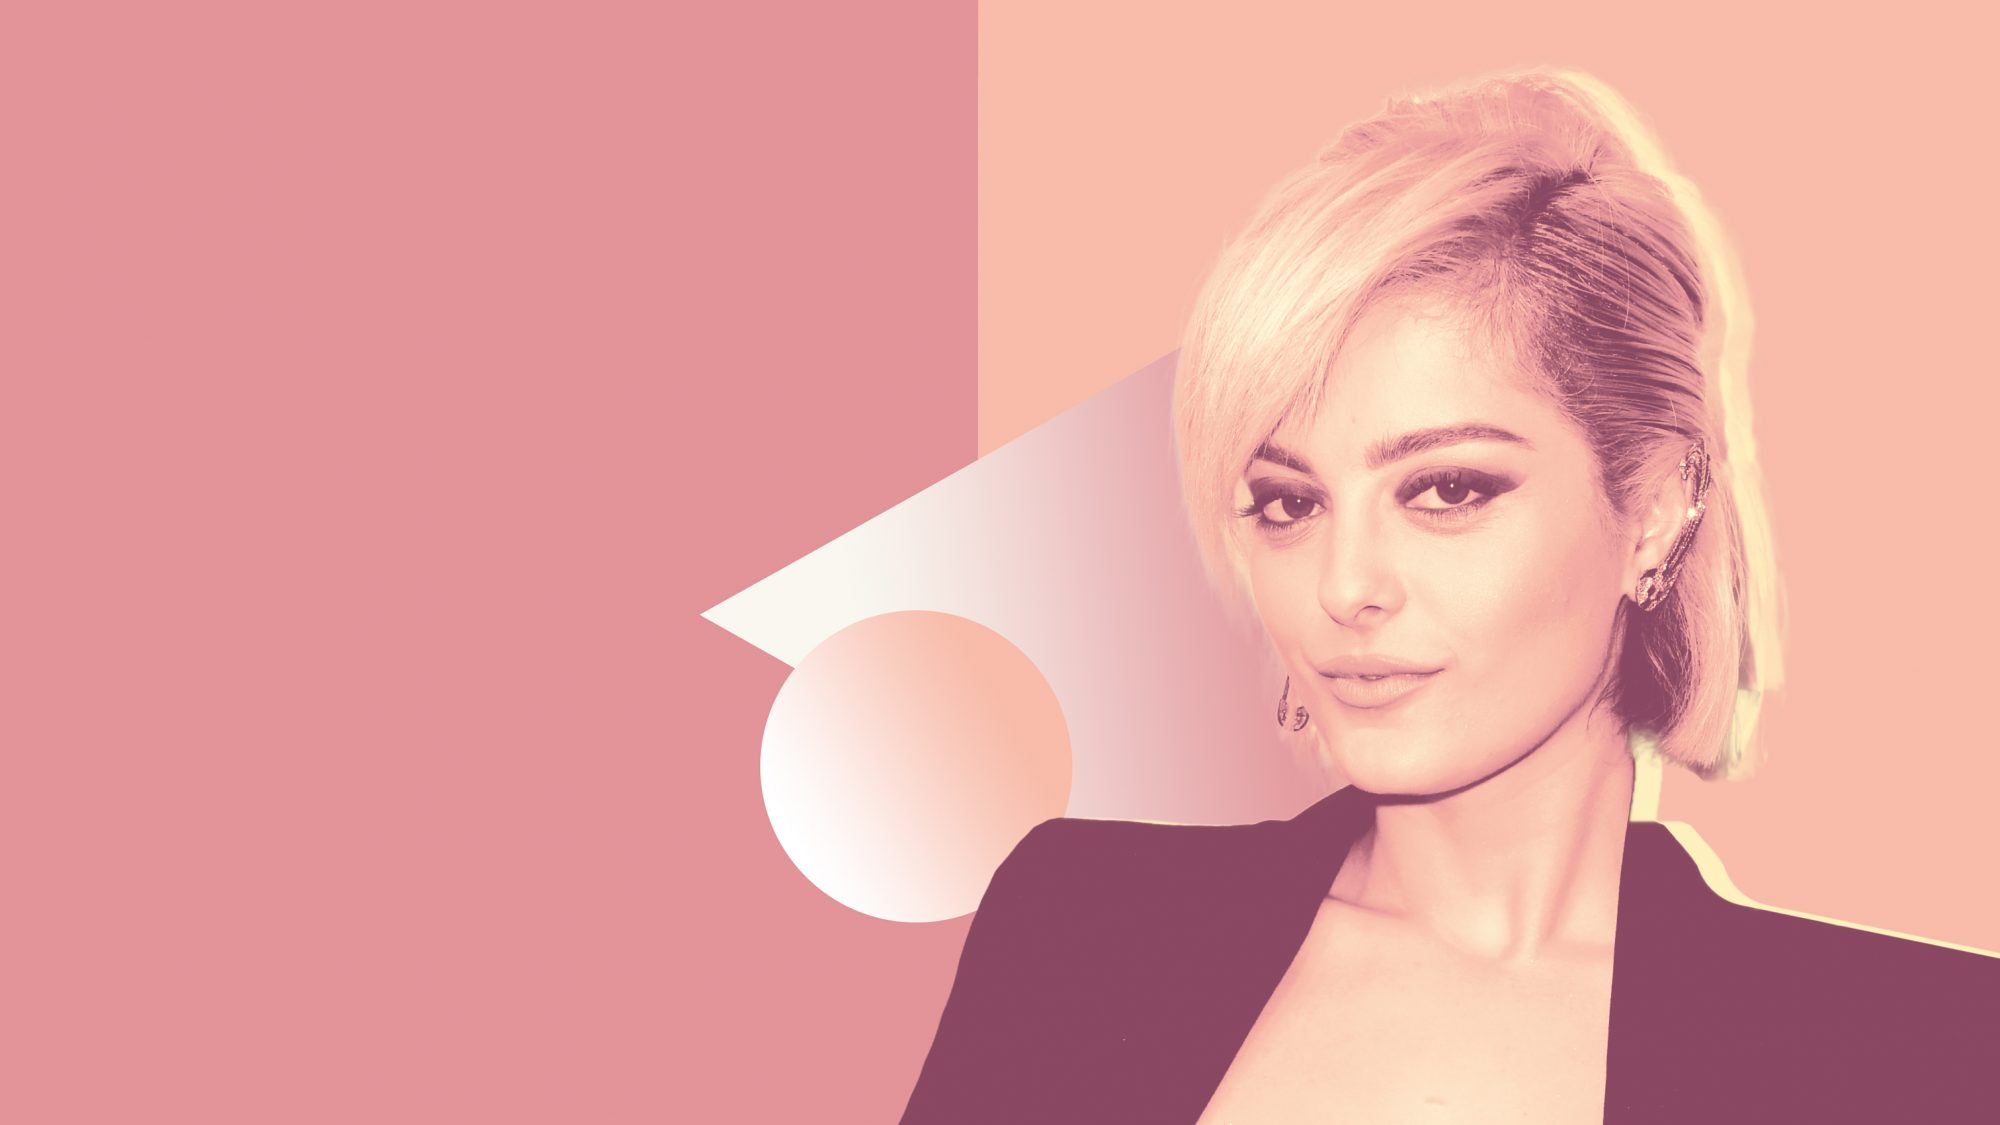 Bebe Rexha's Latest Instagram Photo Shows How 'Real' Her Candid Paparazzi Photos Are